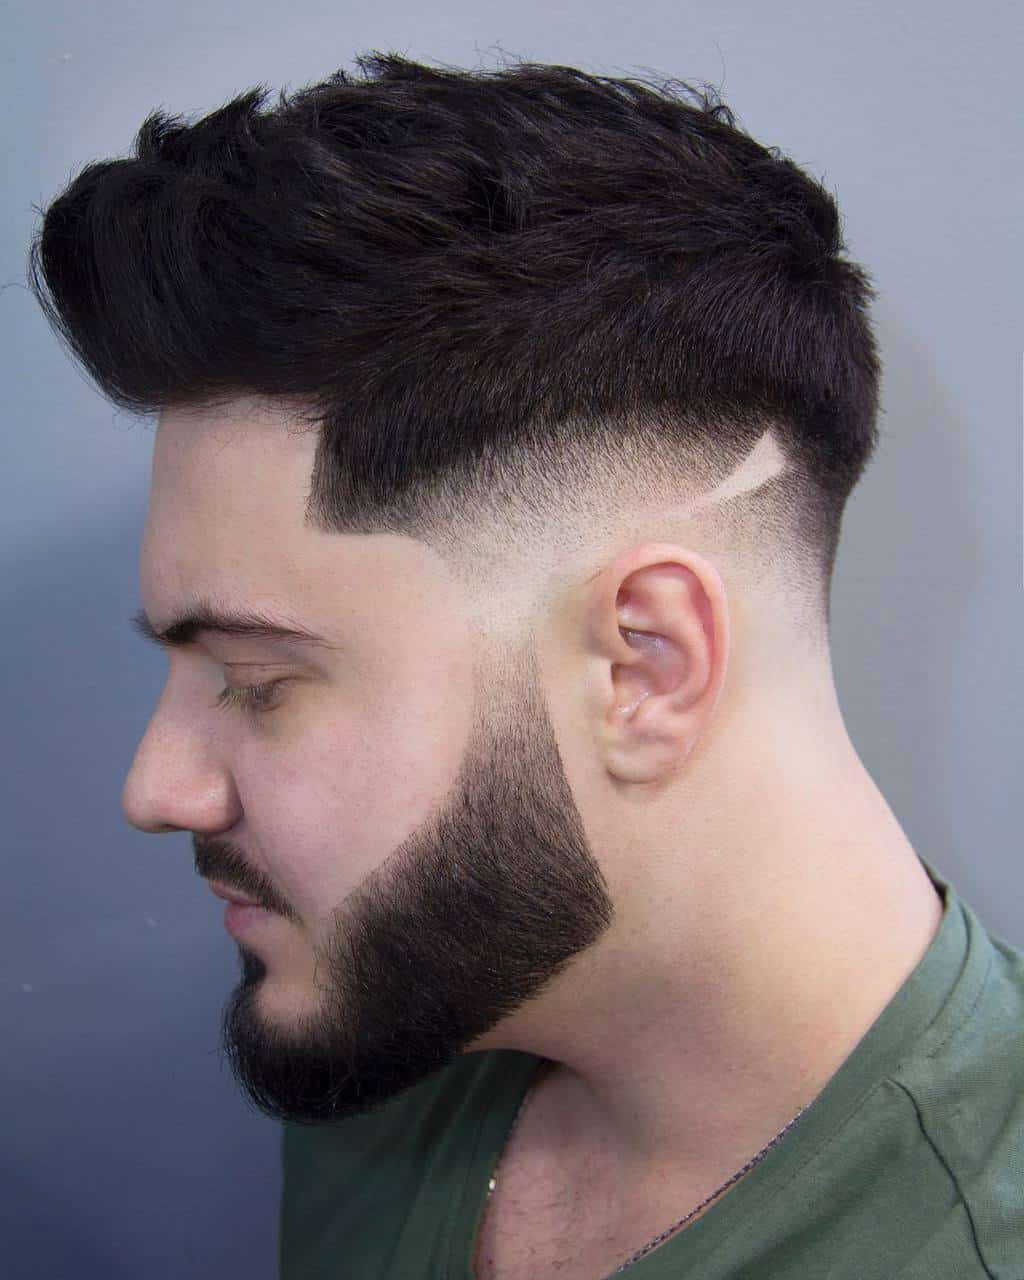 160 Coolest Beard Styles to Grab Instant Attention [2019]